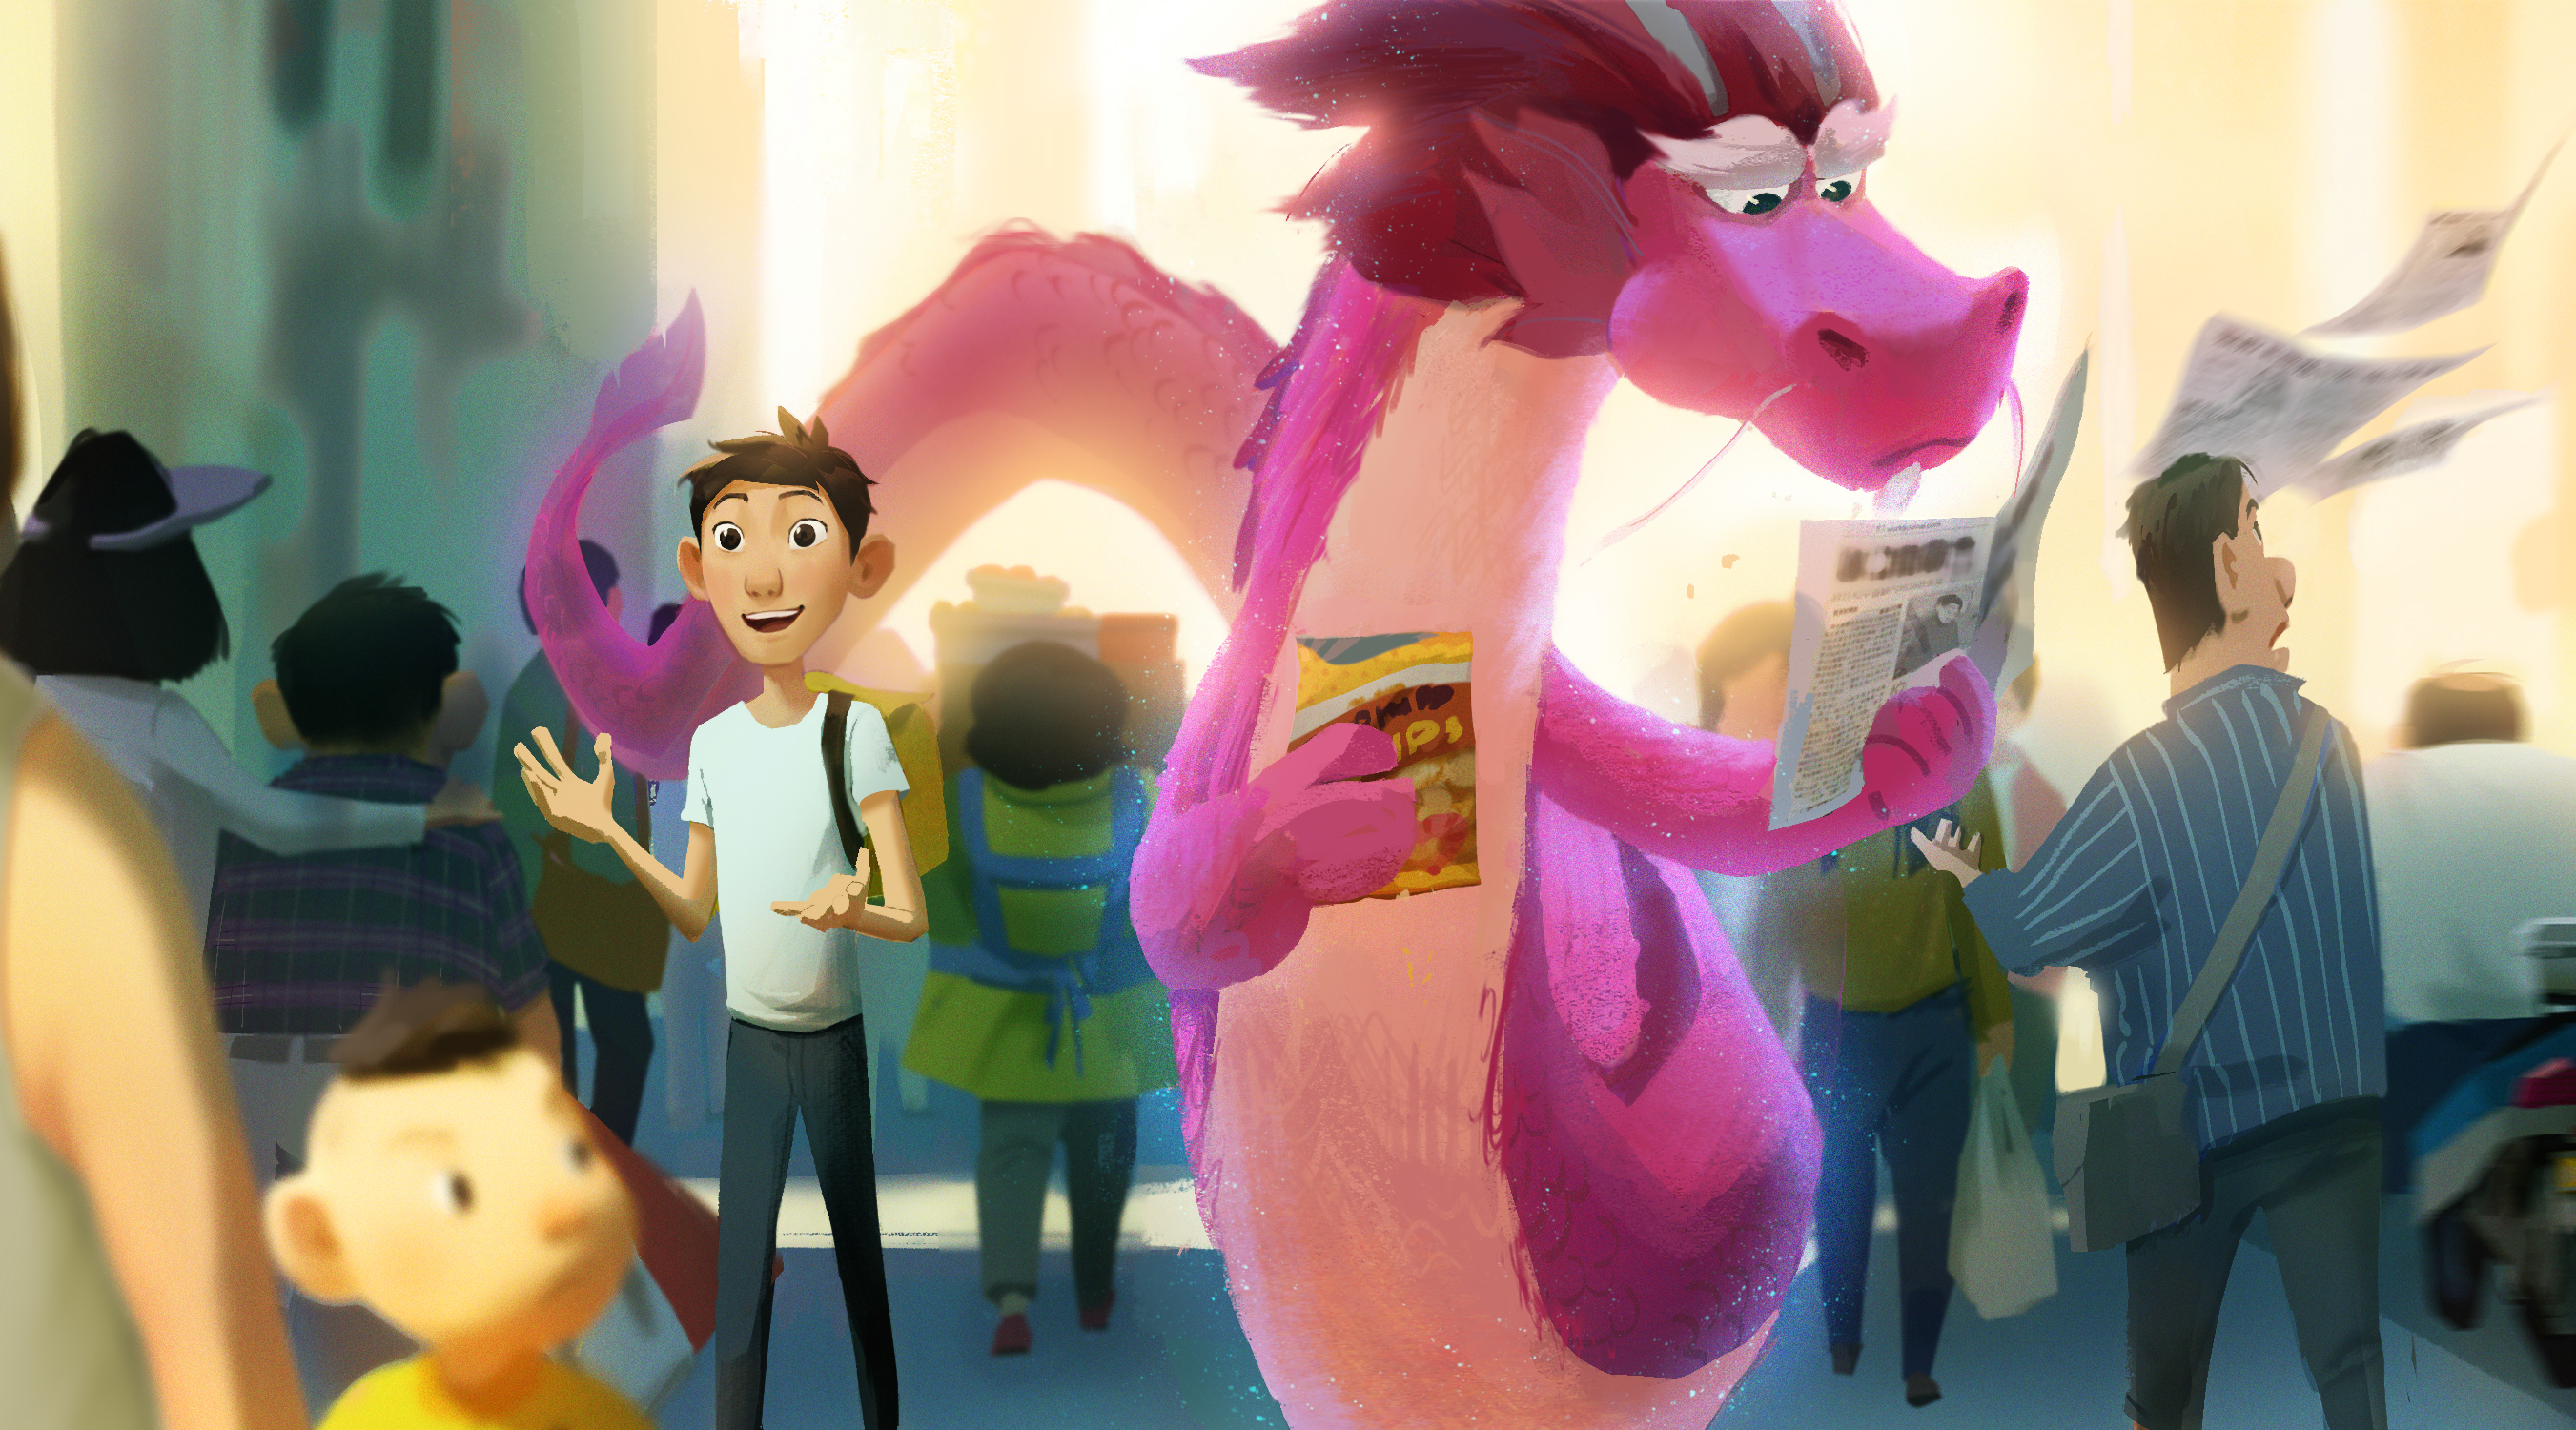 """Annecy: Base FX's """"Wish Dragon"""" Picks Up Where Dreamworks Left Off - Variety"""